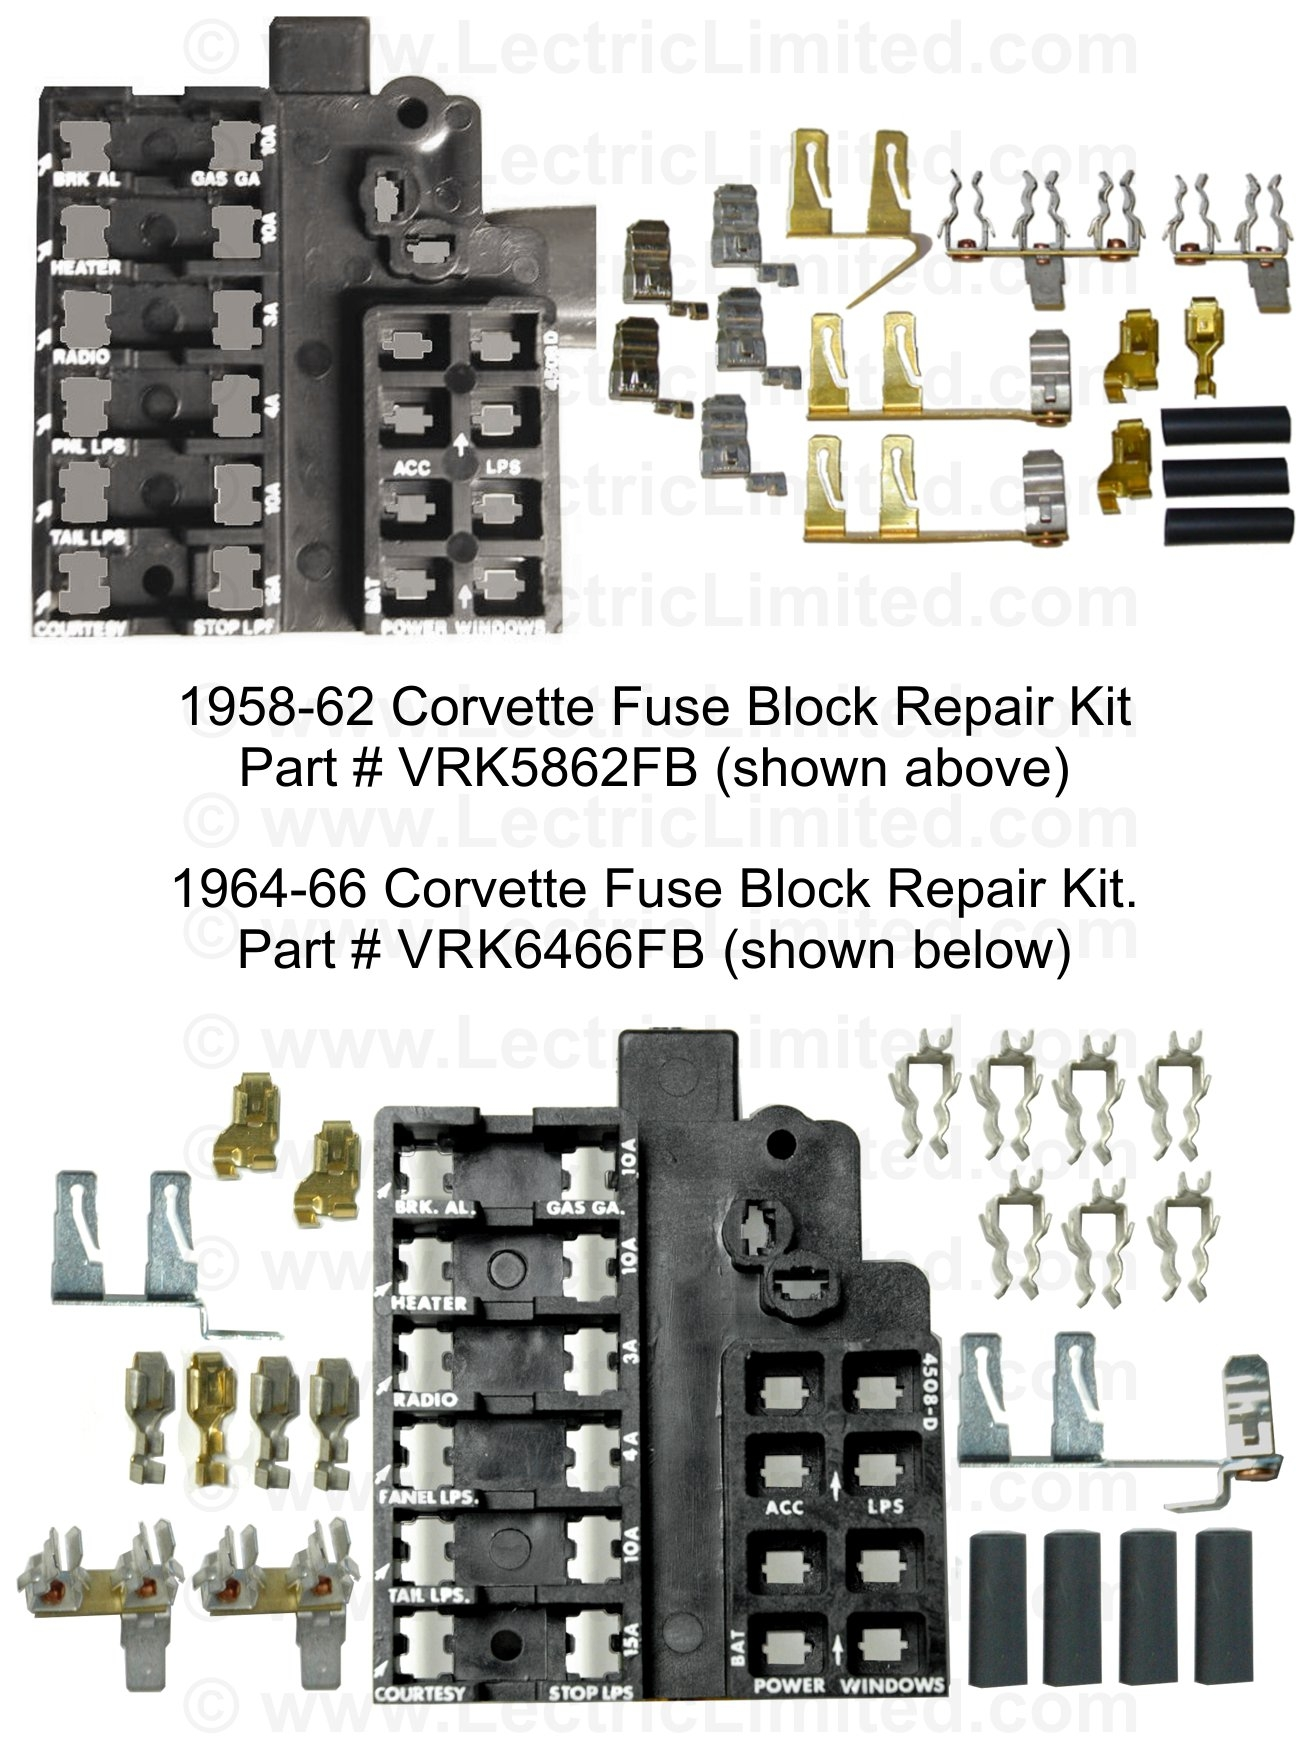 1967 corvette fuse box repair components